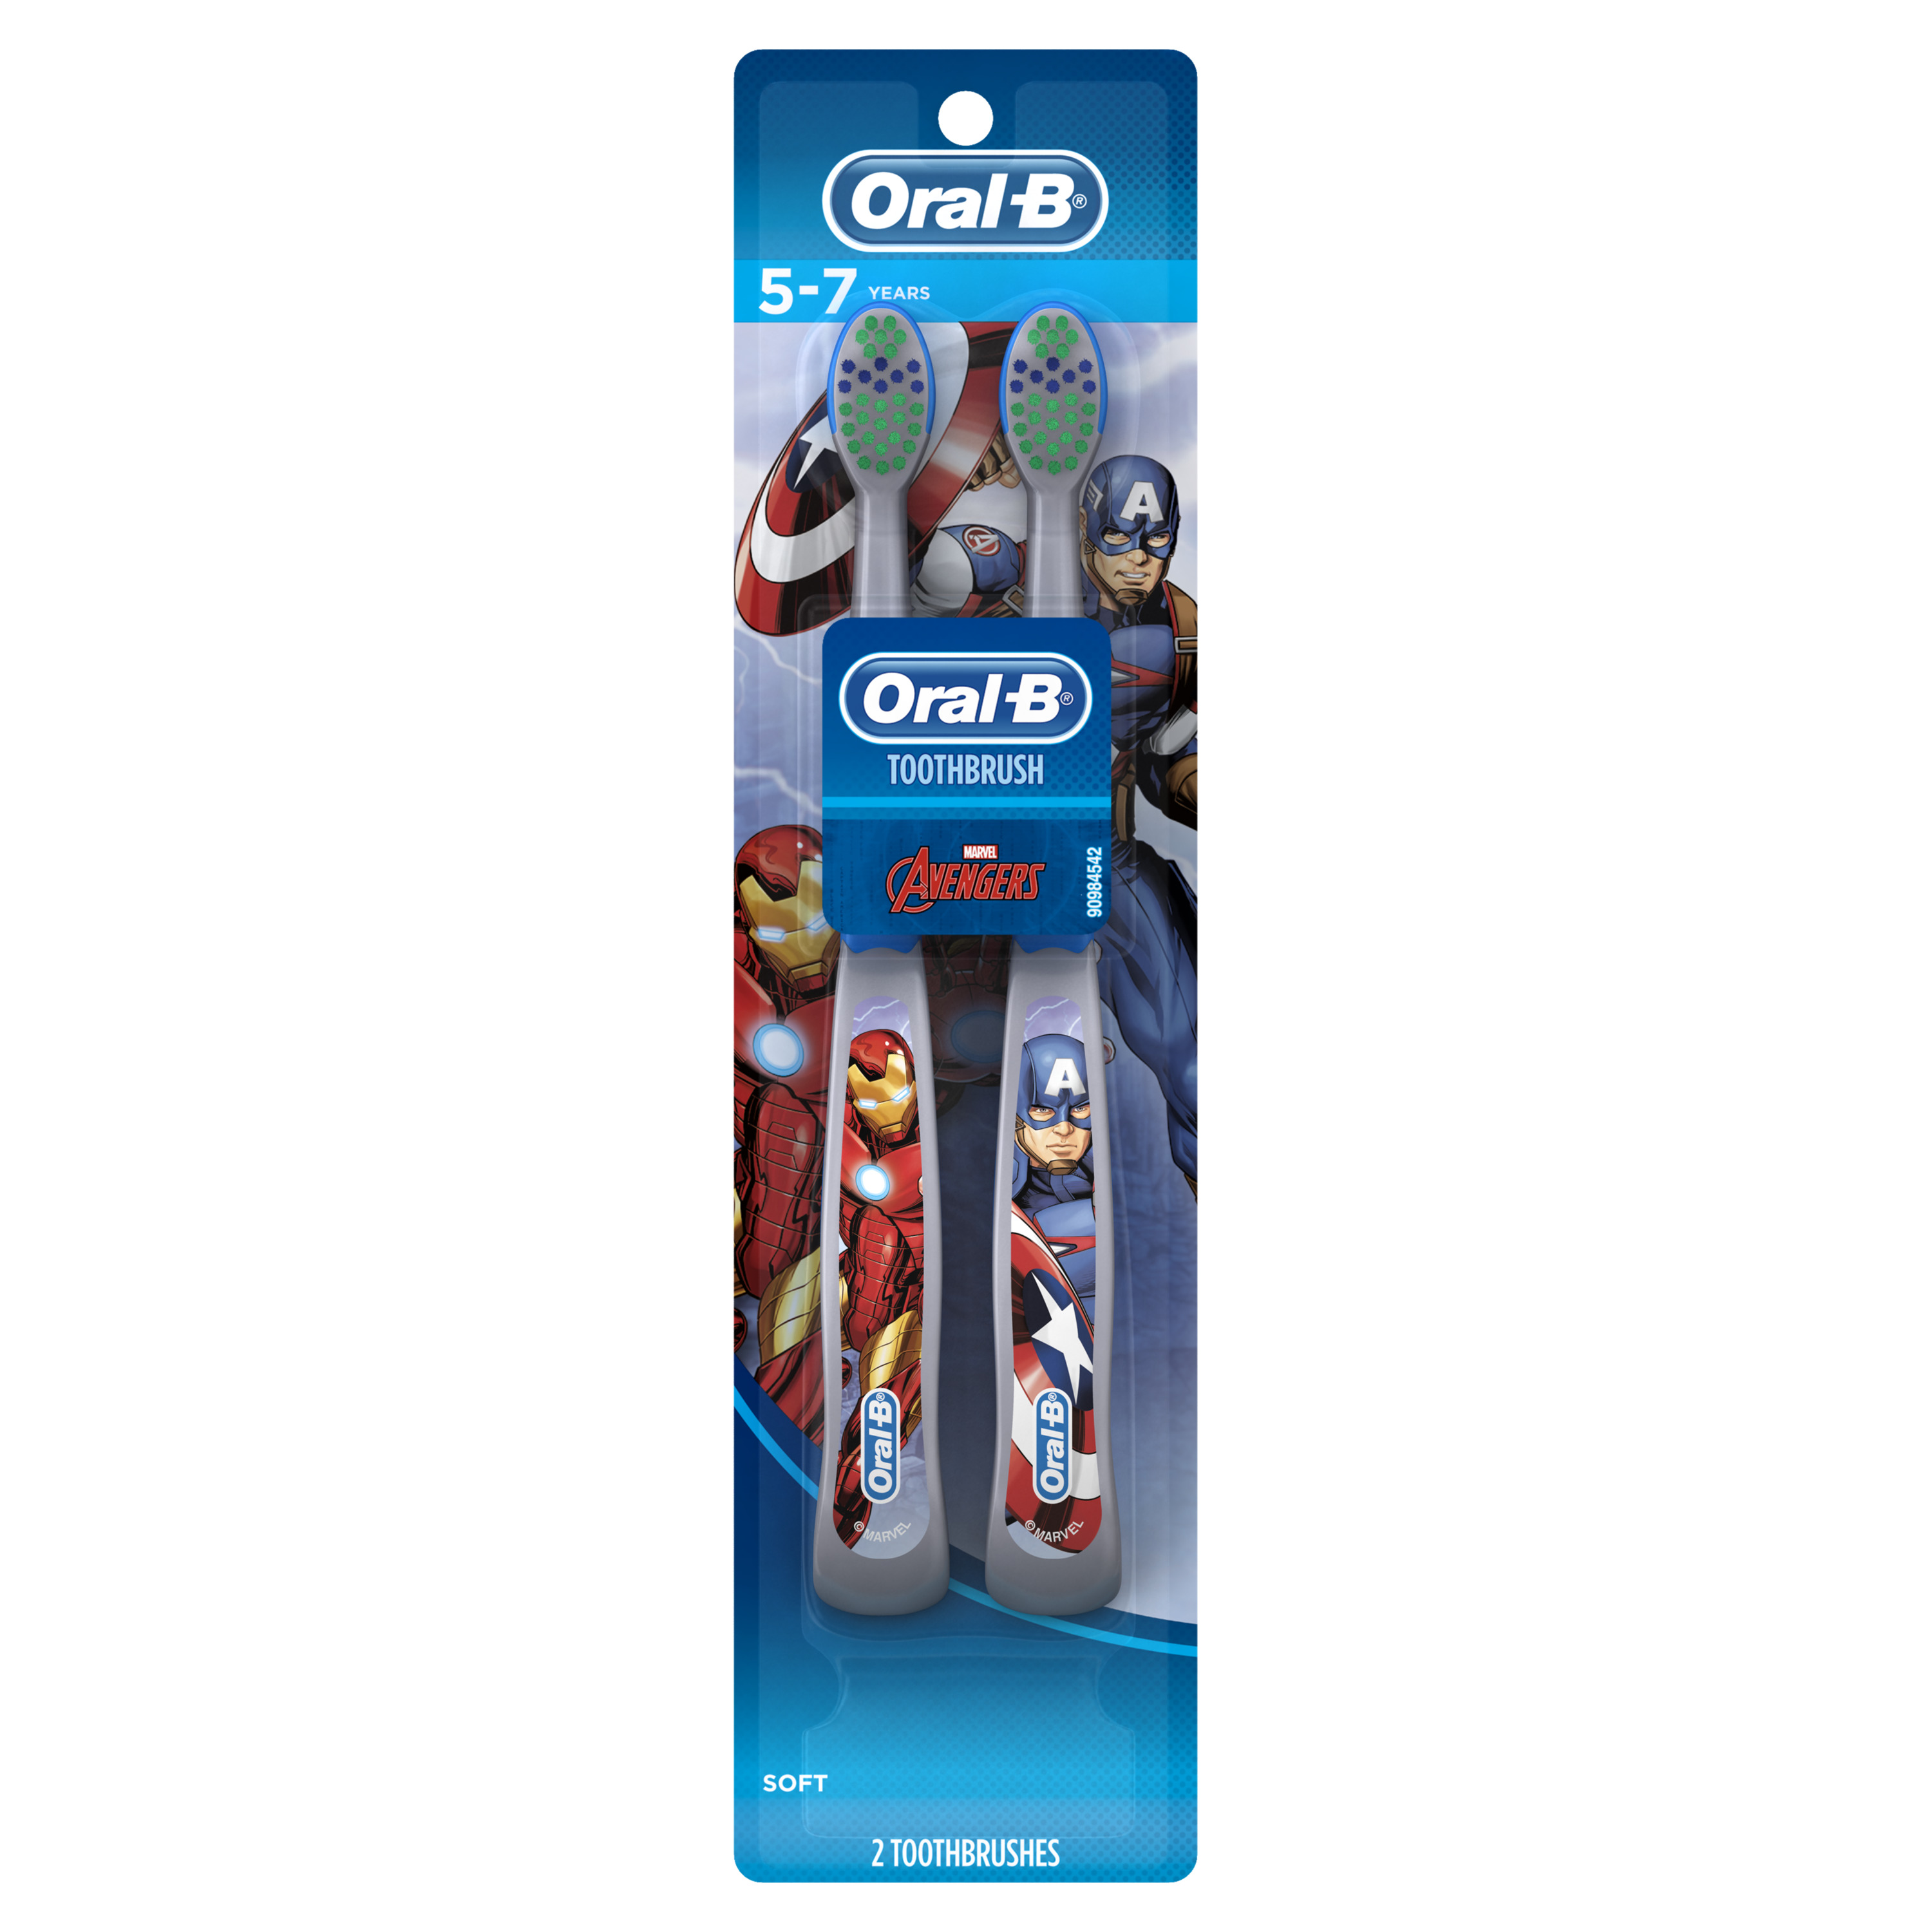 Oral-B Kid's Manual Toothbrush featuring Marvel's Avengers, 2 count